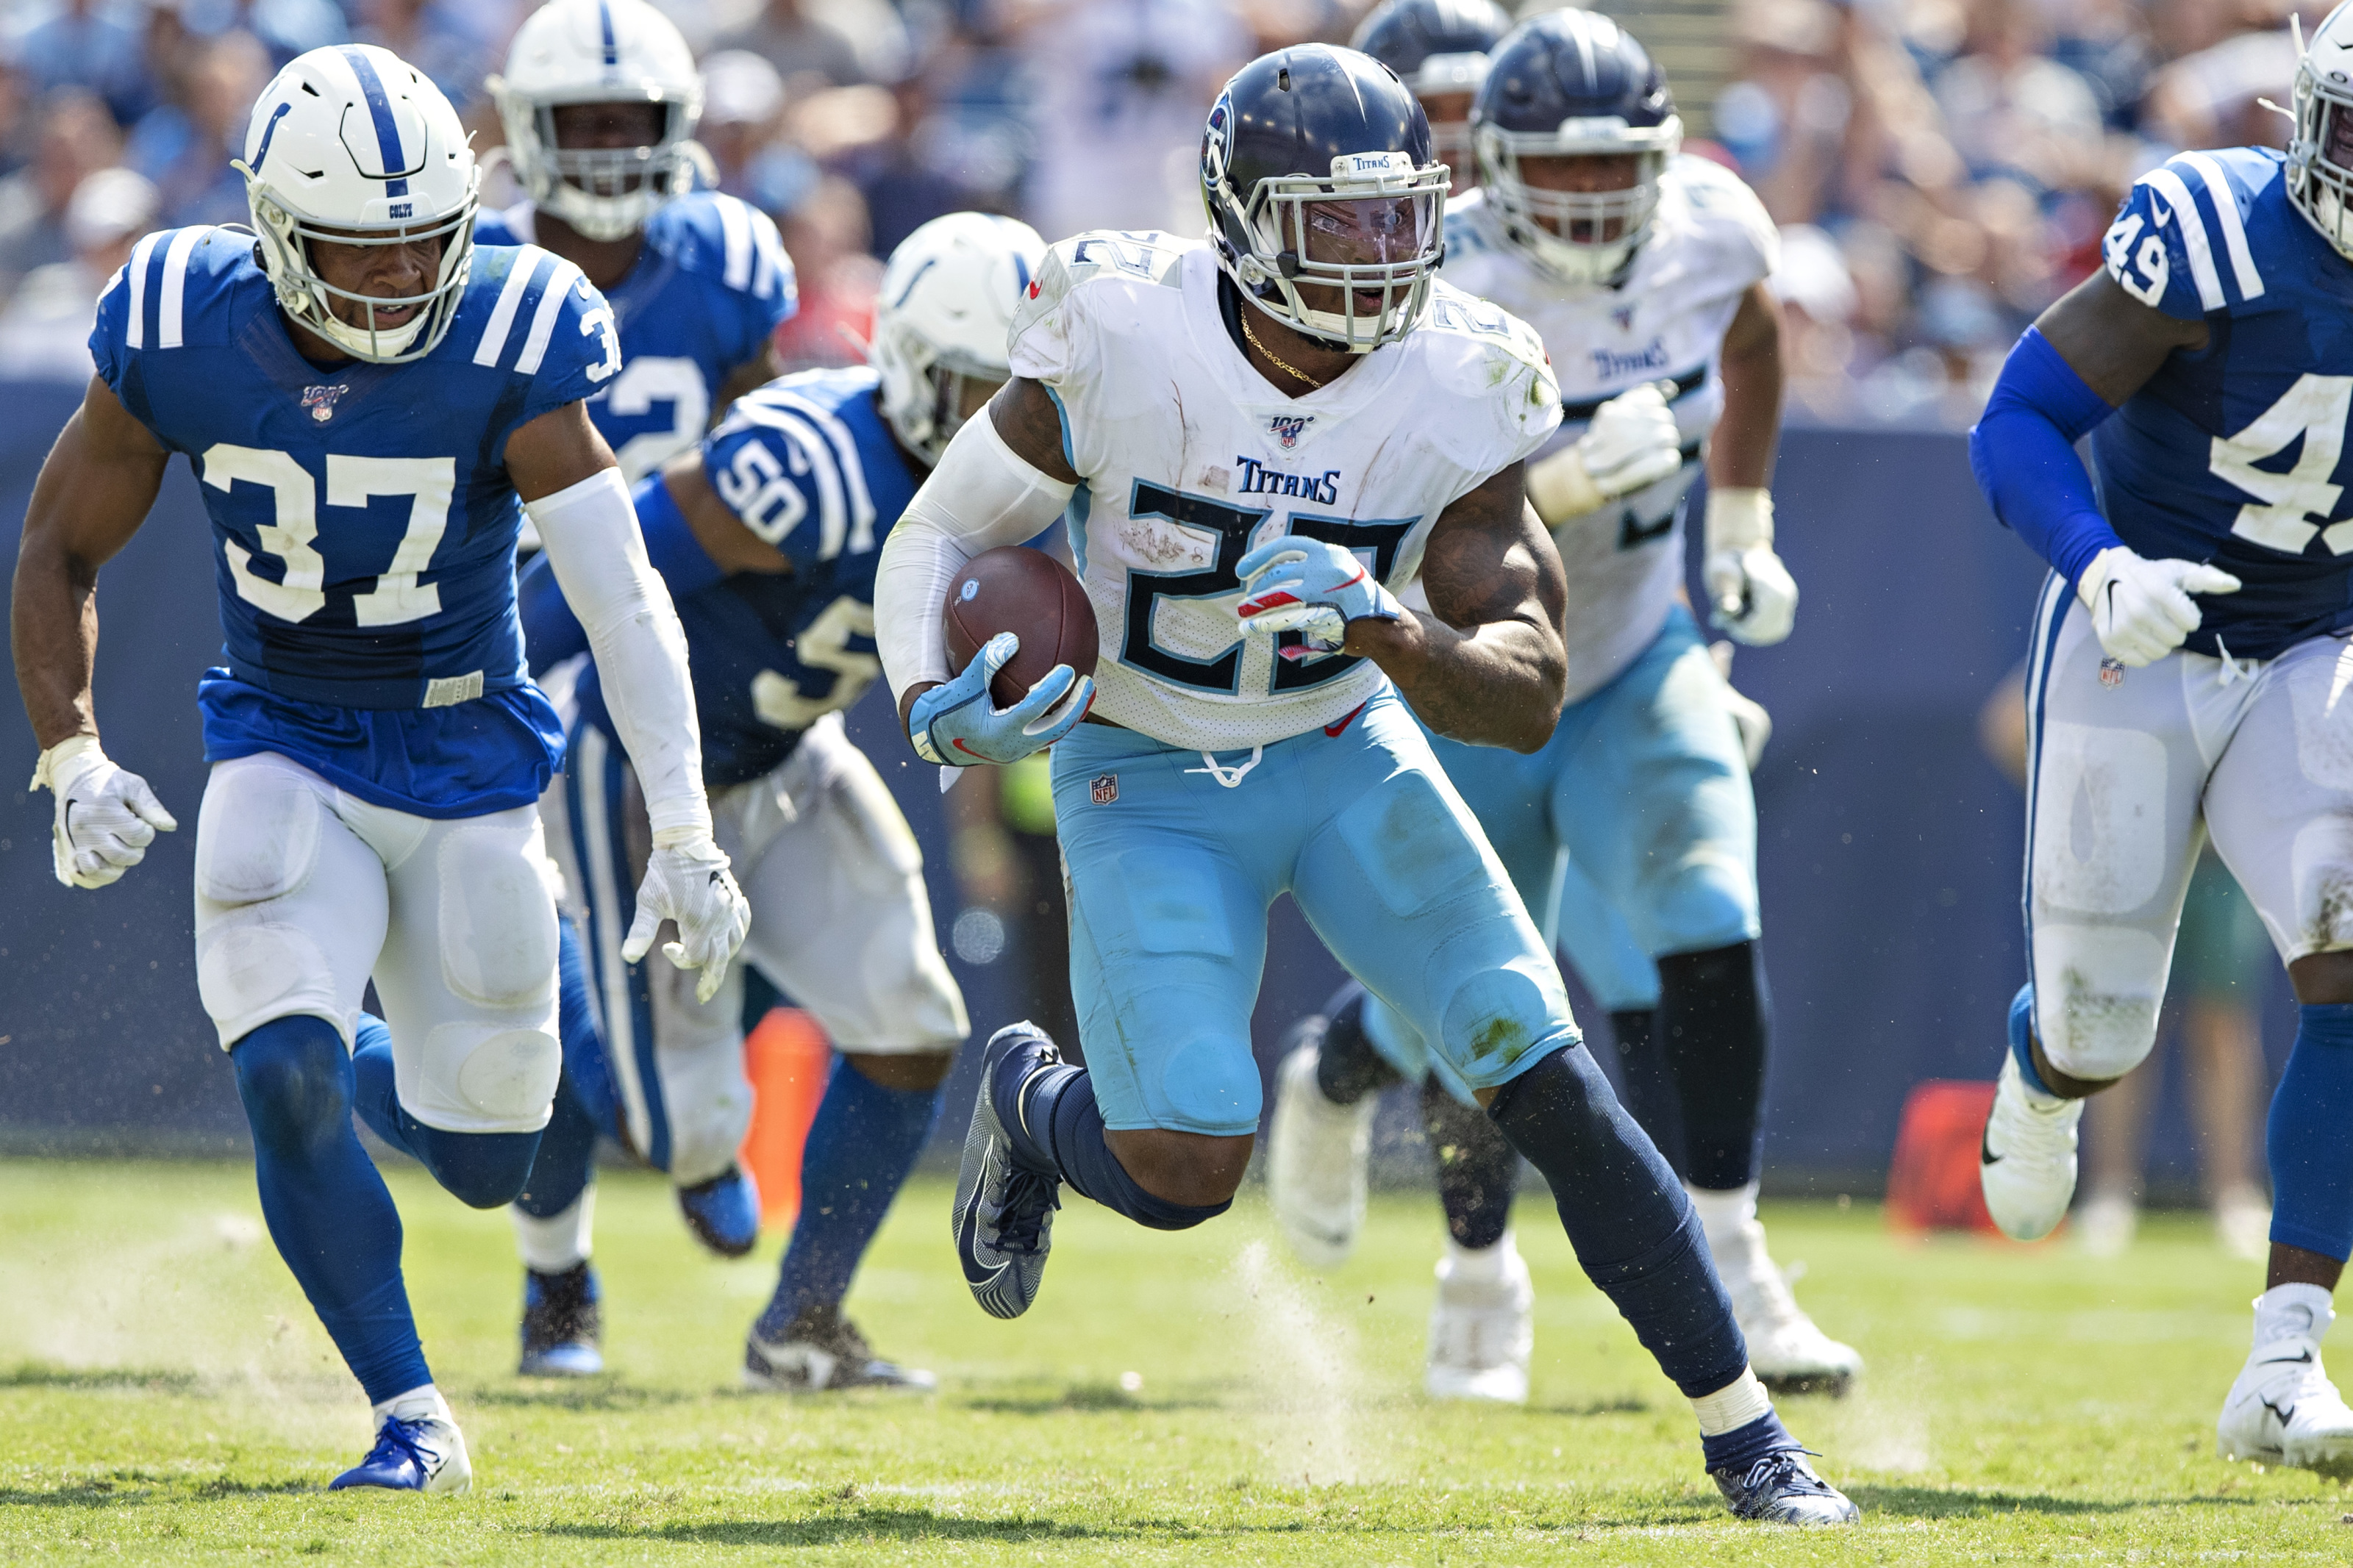 Titans vs. Colts: A game between two teams going in opposite directions